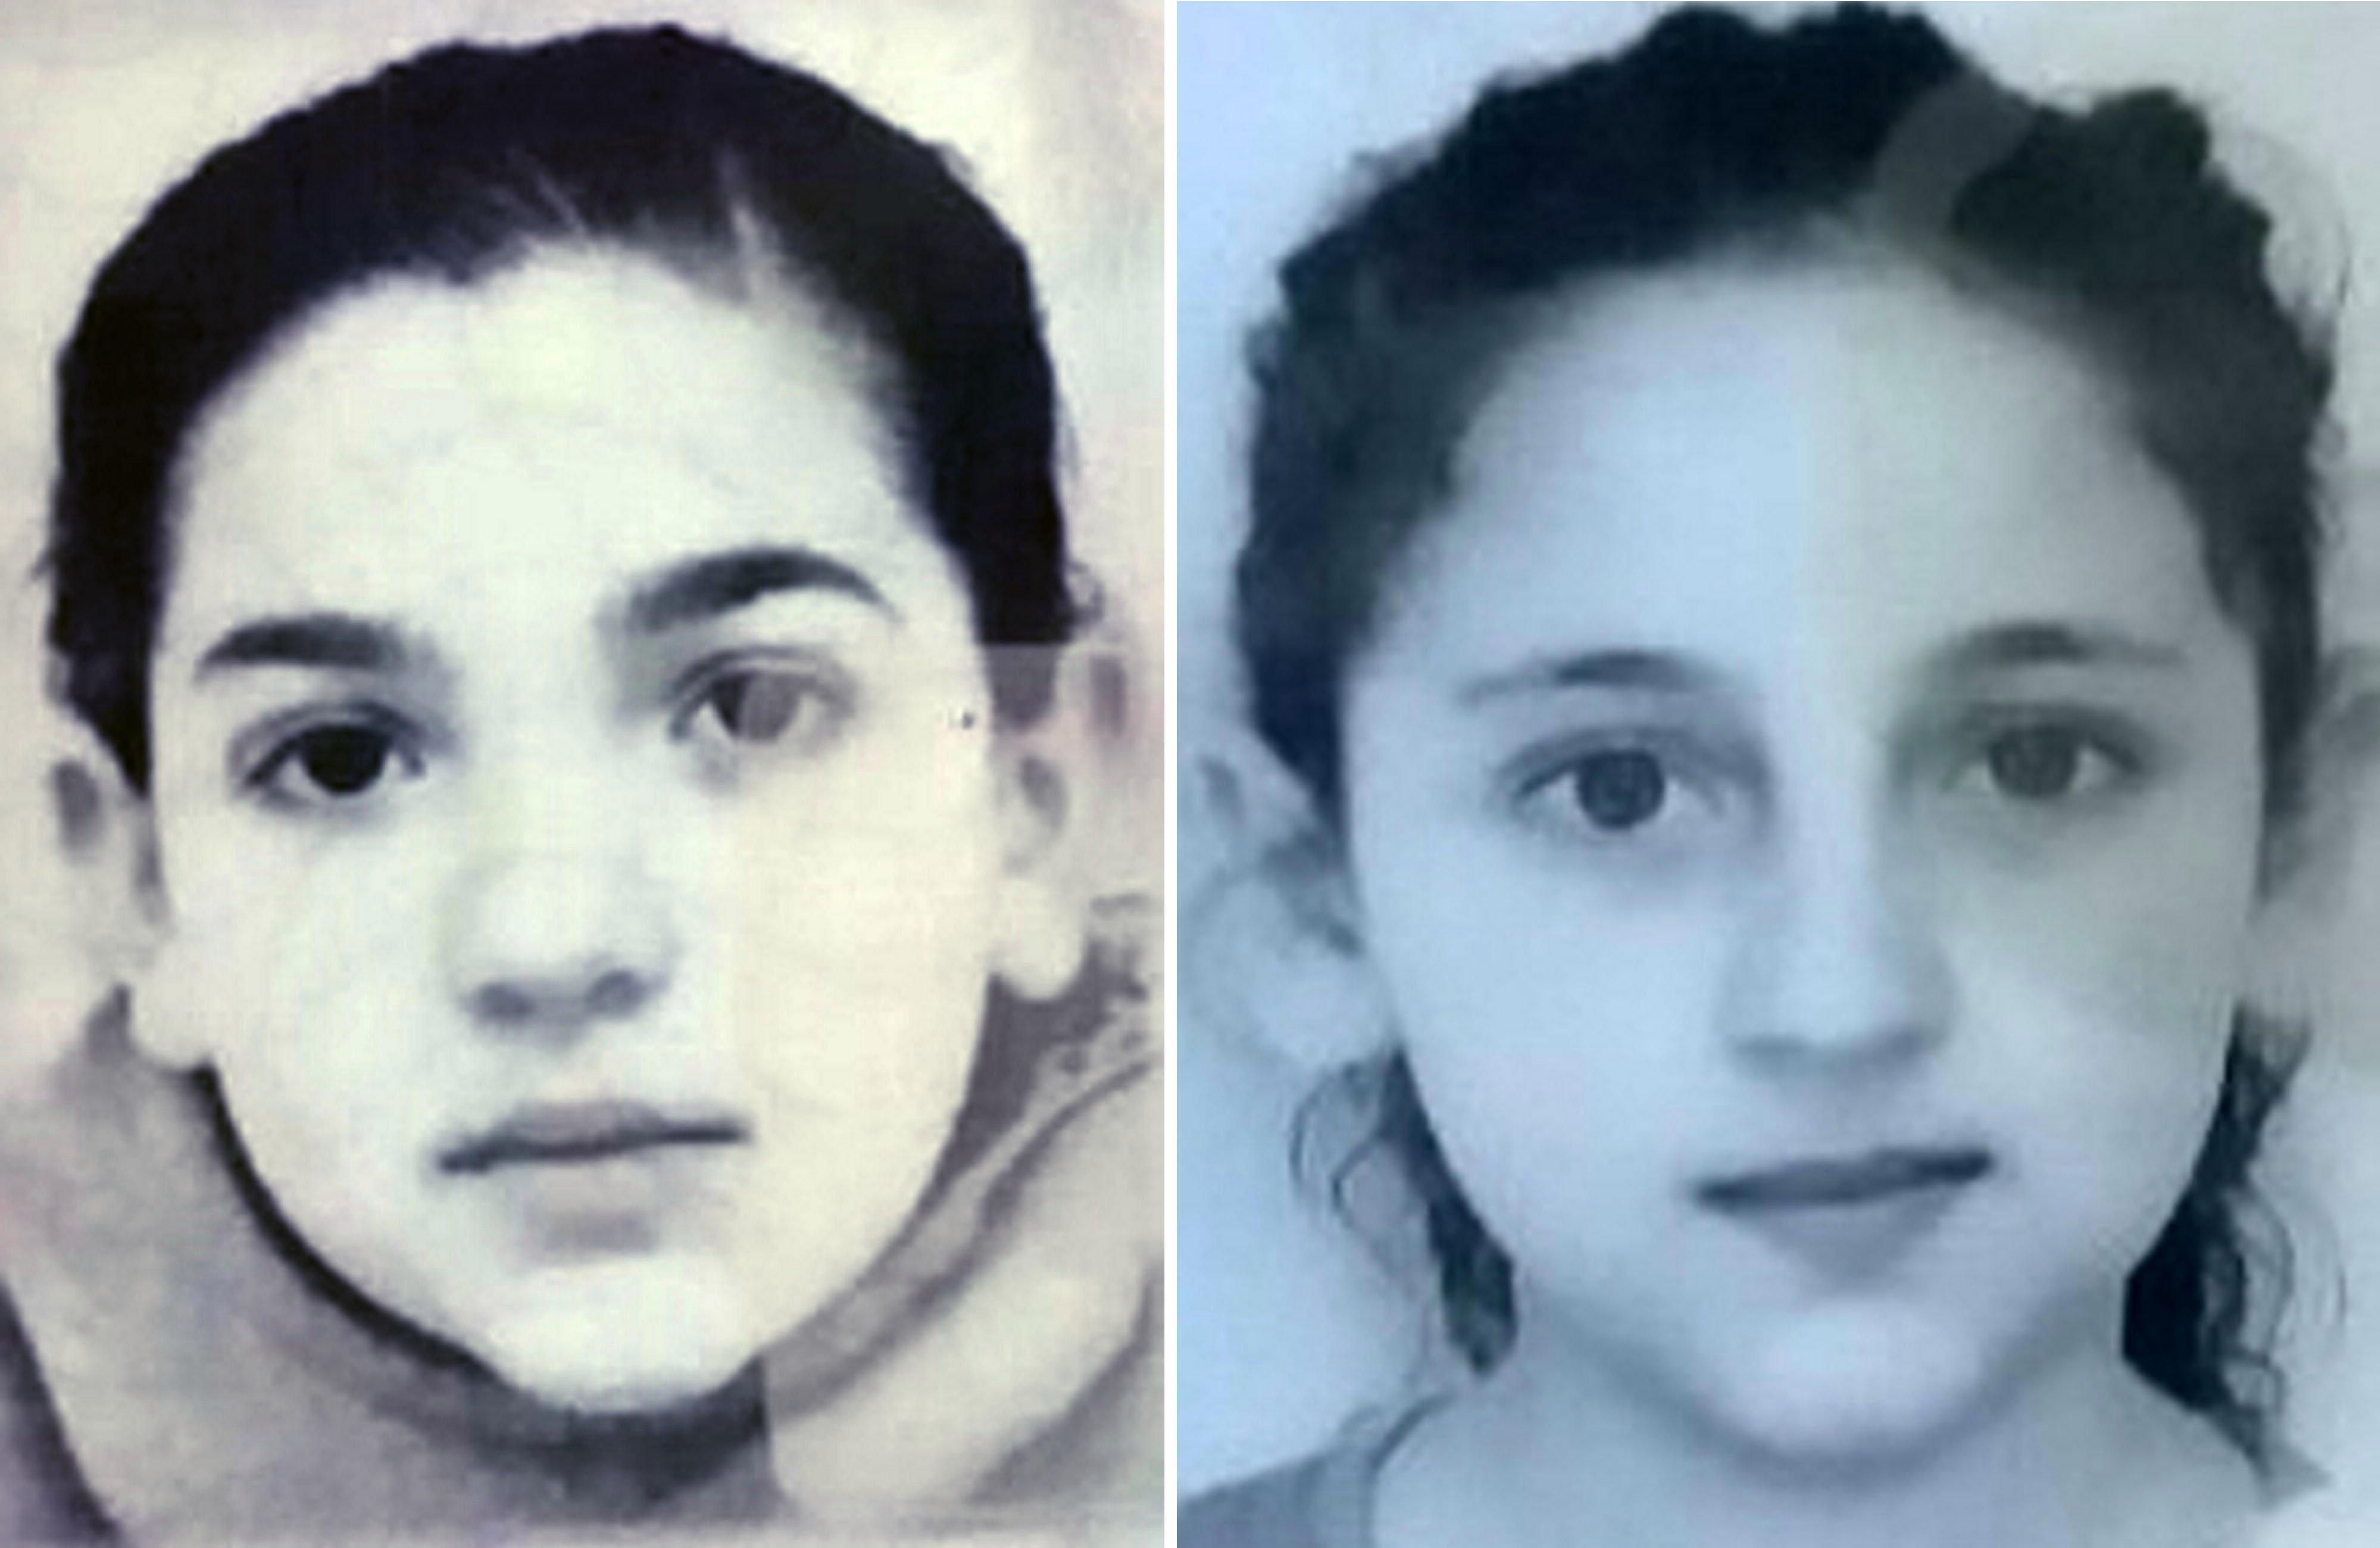 Fears for missing sisters, 12 and 11, who haven't been seen in five days since disappearing in West Yorkshire